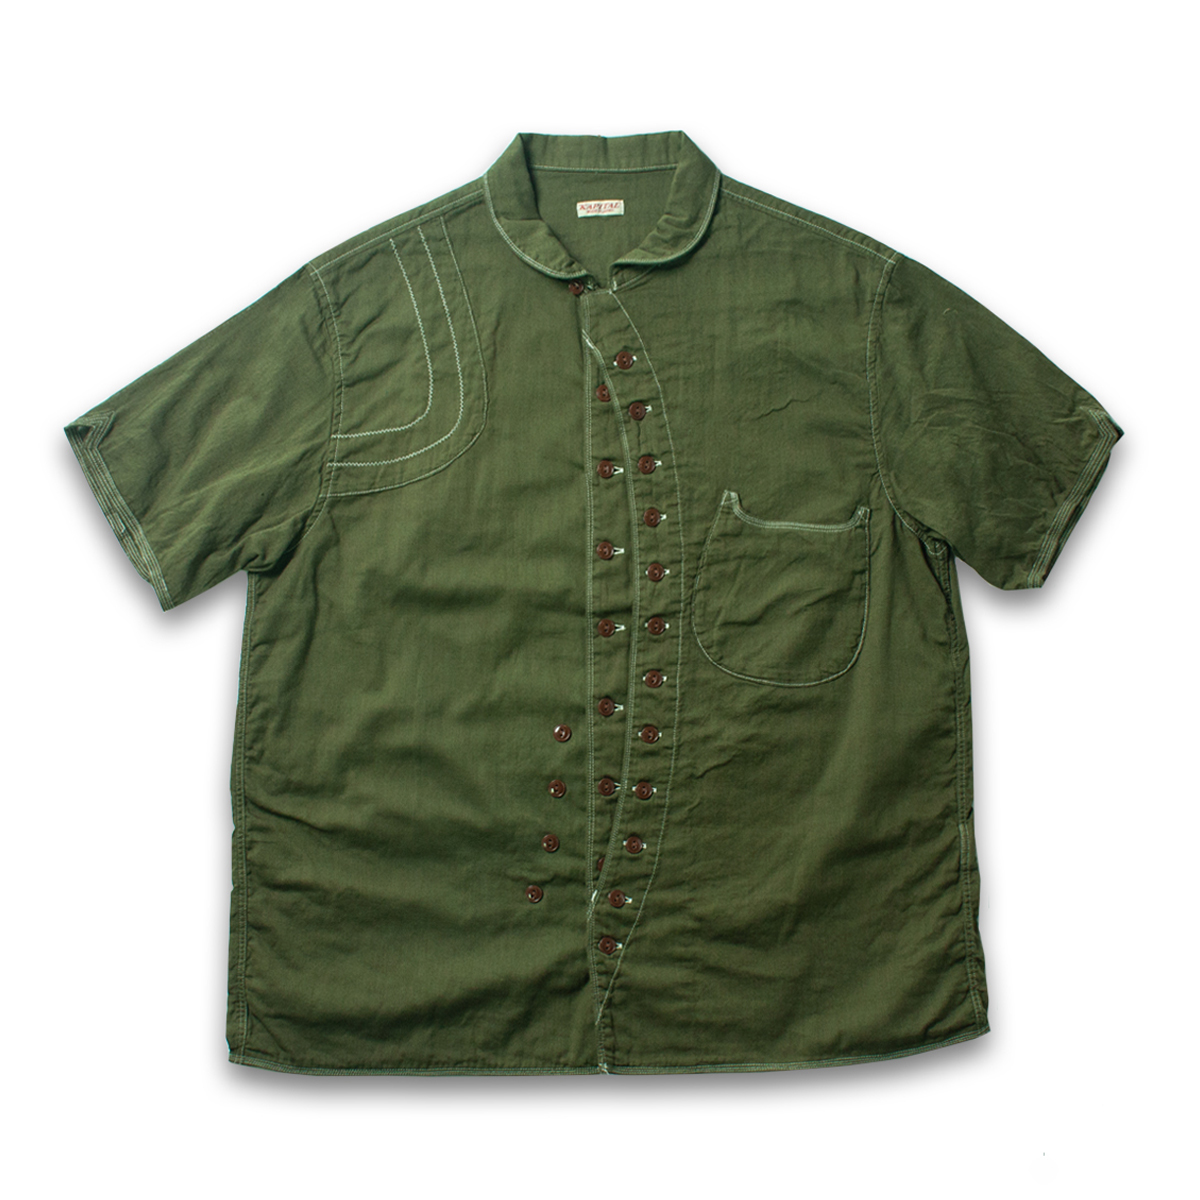 [KAPITAL] SINGLE-LAYER GAUZE SAFARI ALOHA SHIRT 'KHAKI'